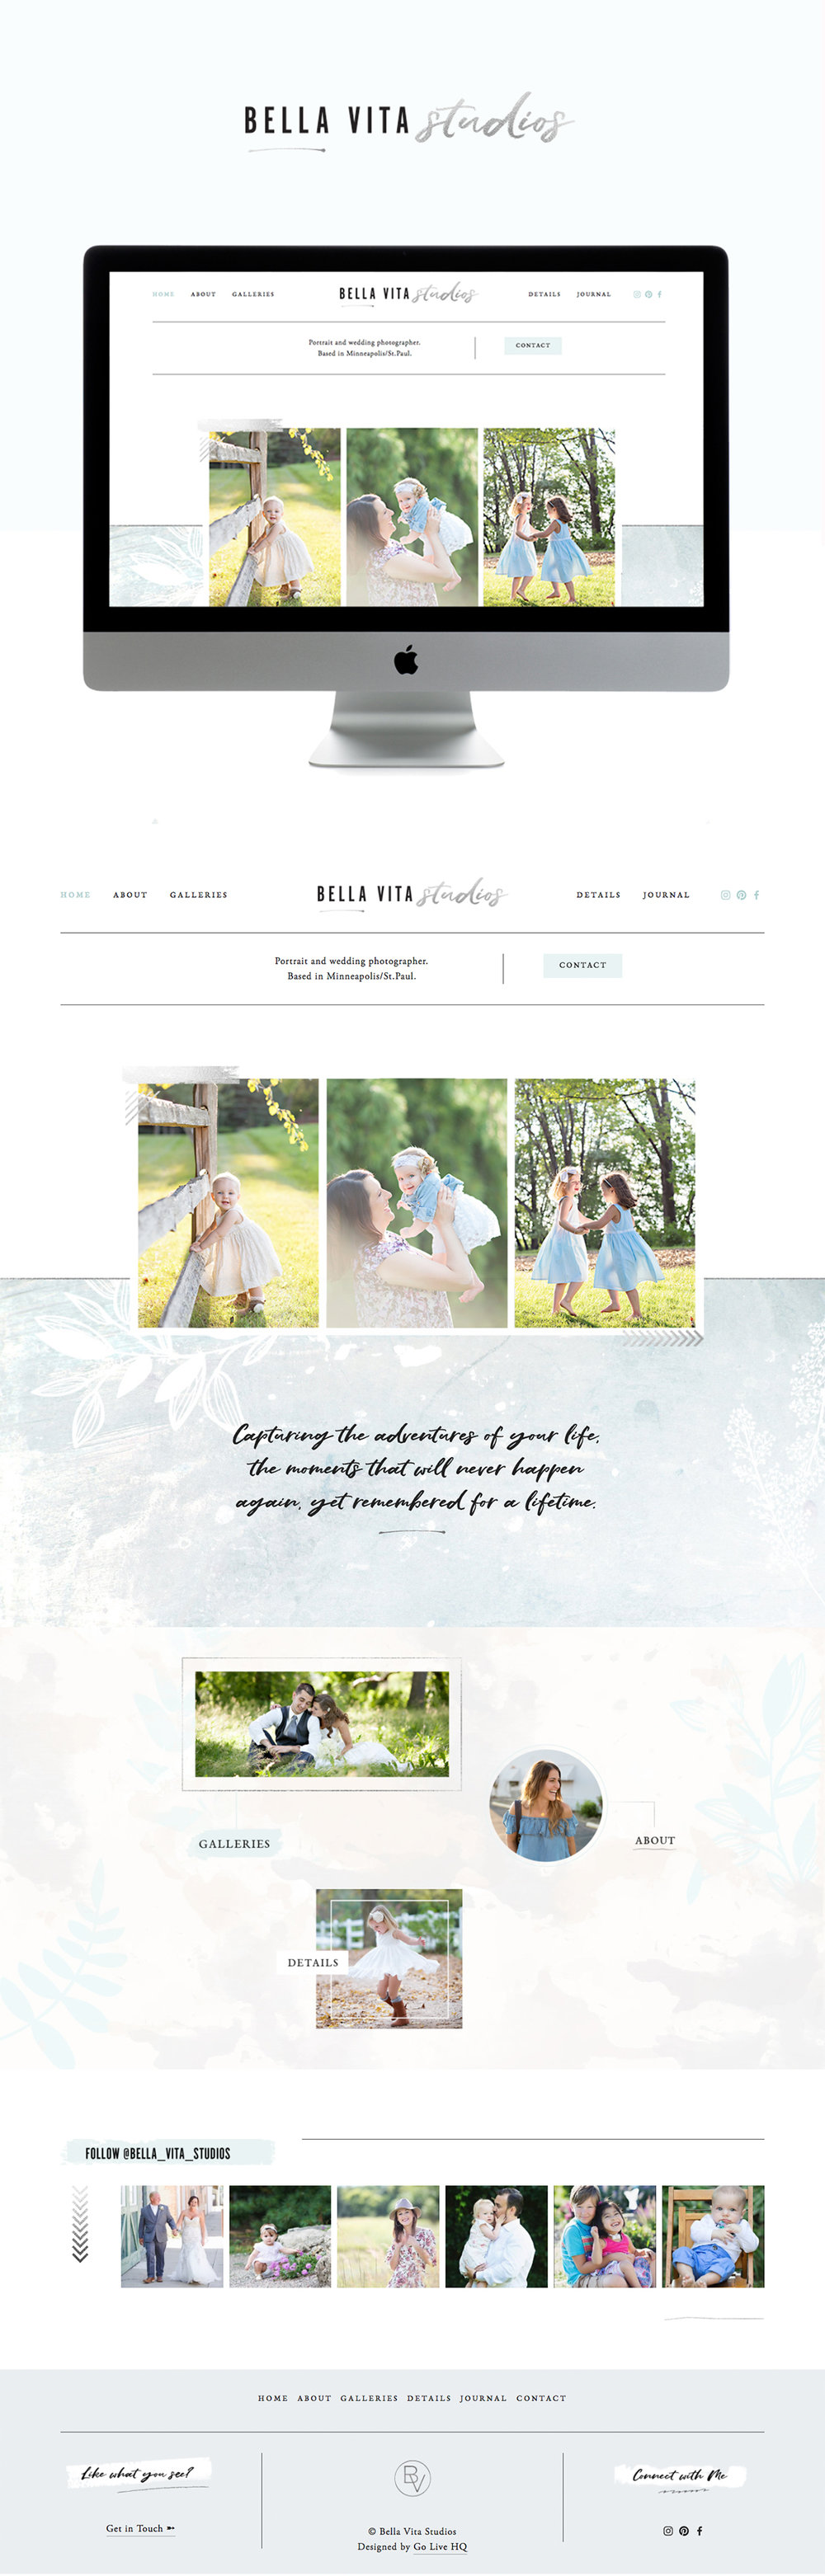 free people website inspiration | Go Live Hq